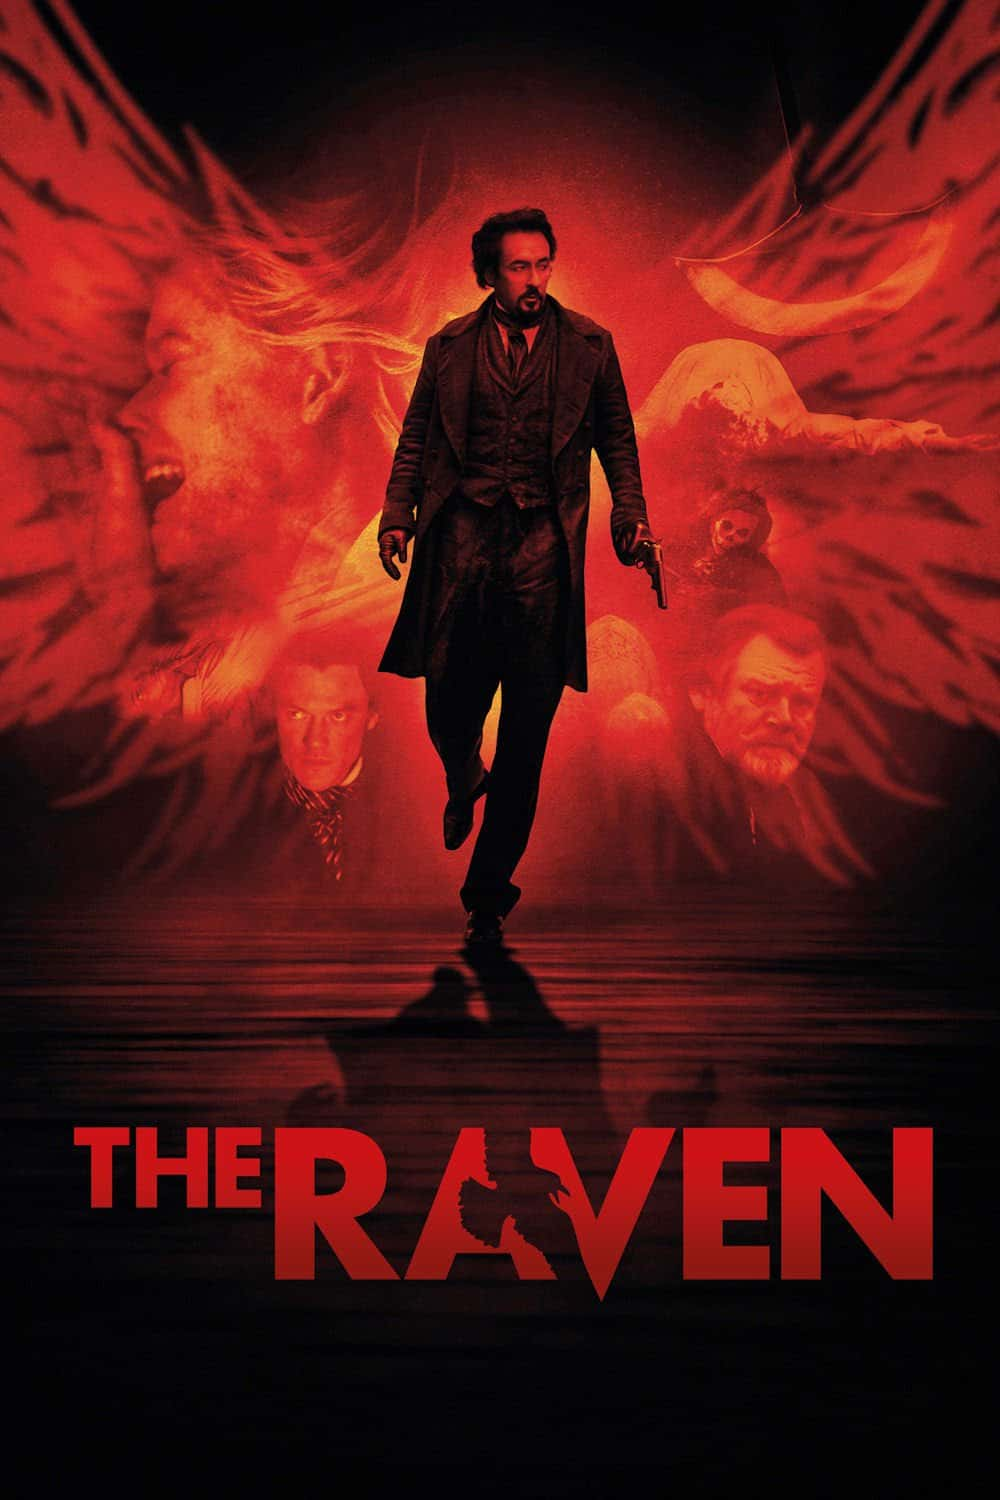 The Raven, 2012